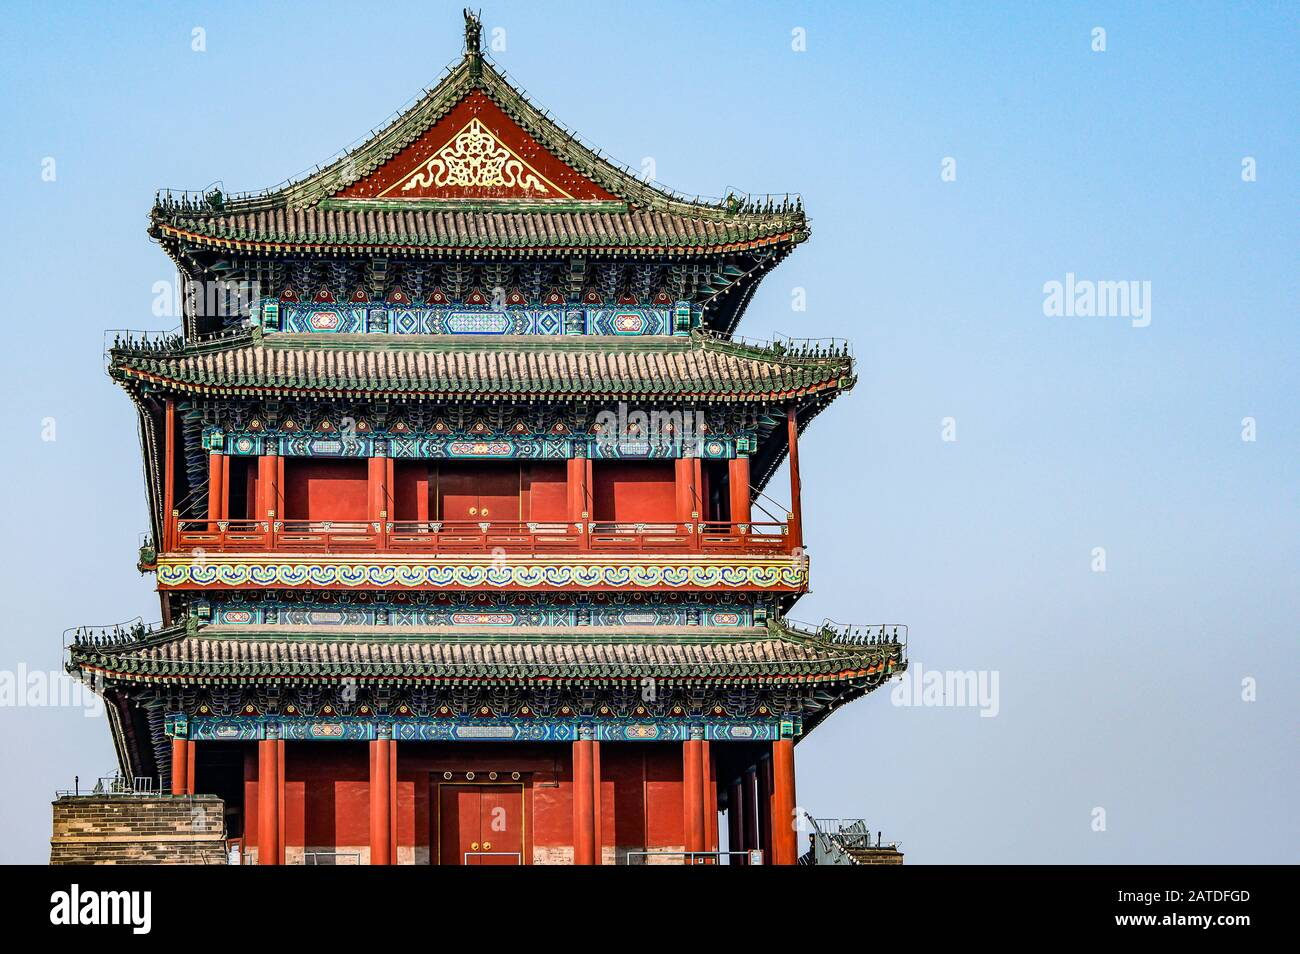 China, Beijing, Forbidden City Different design elements of the colorful buildings rooftops closeup details. Stock Photo